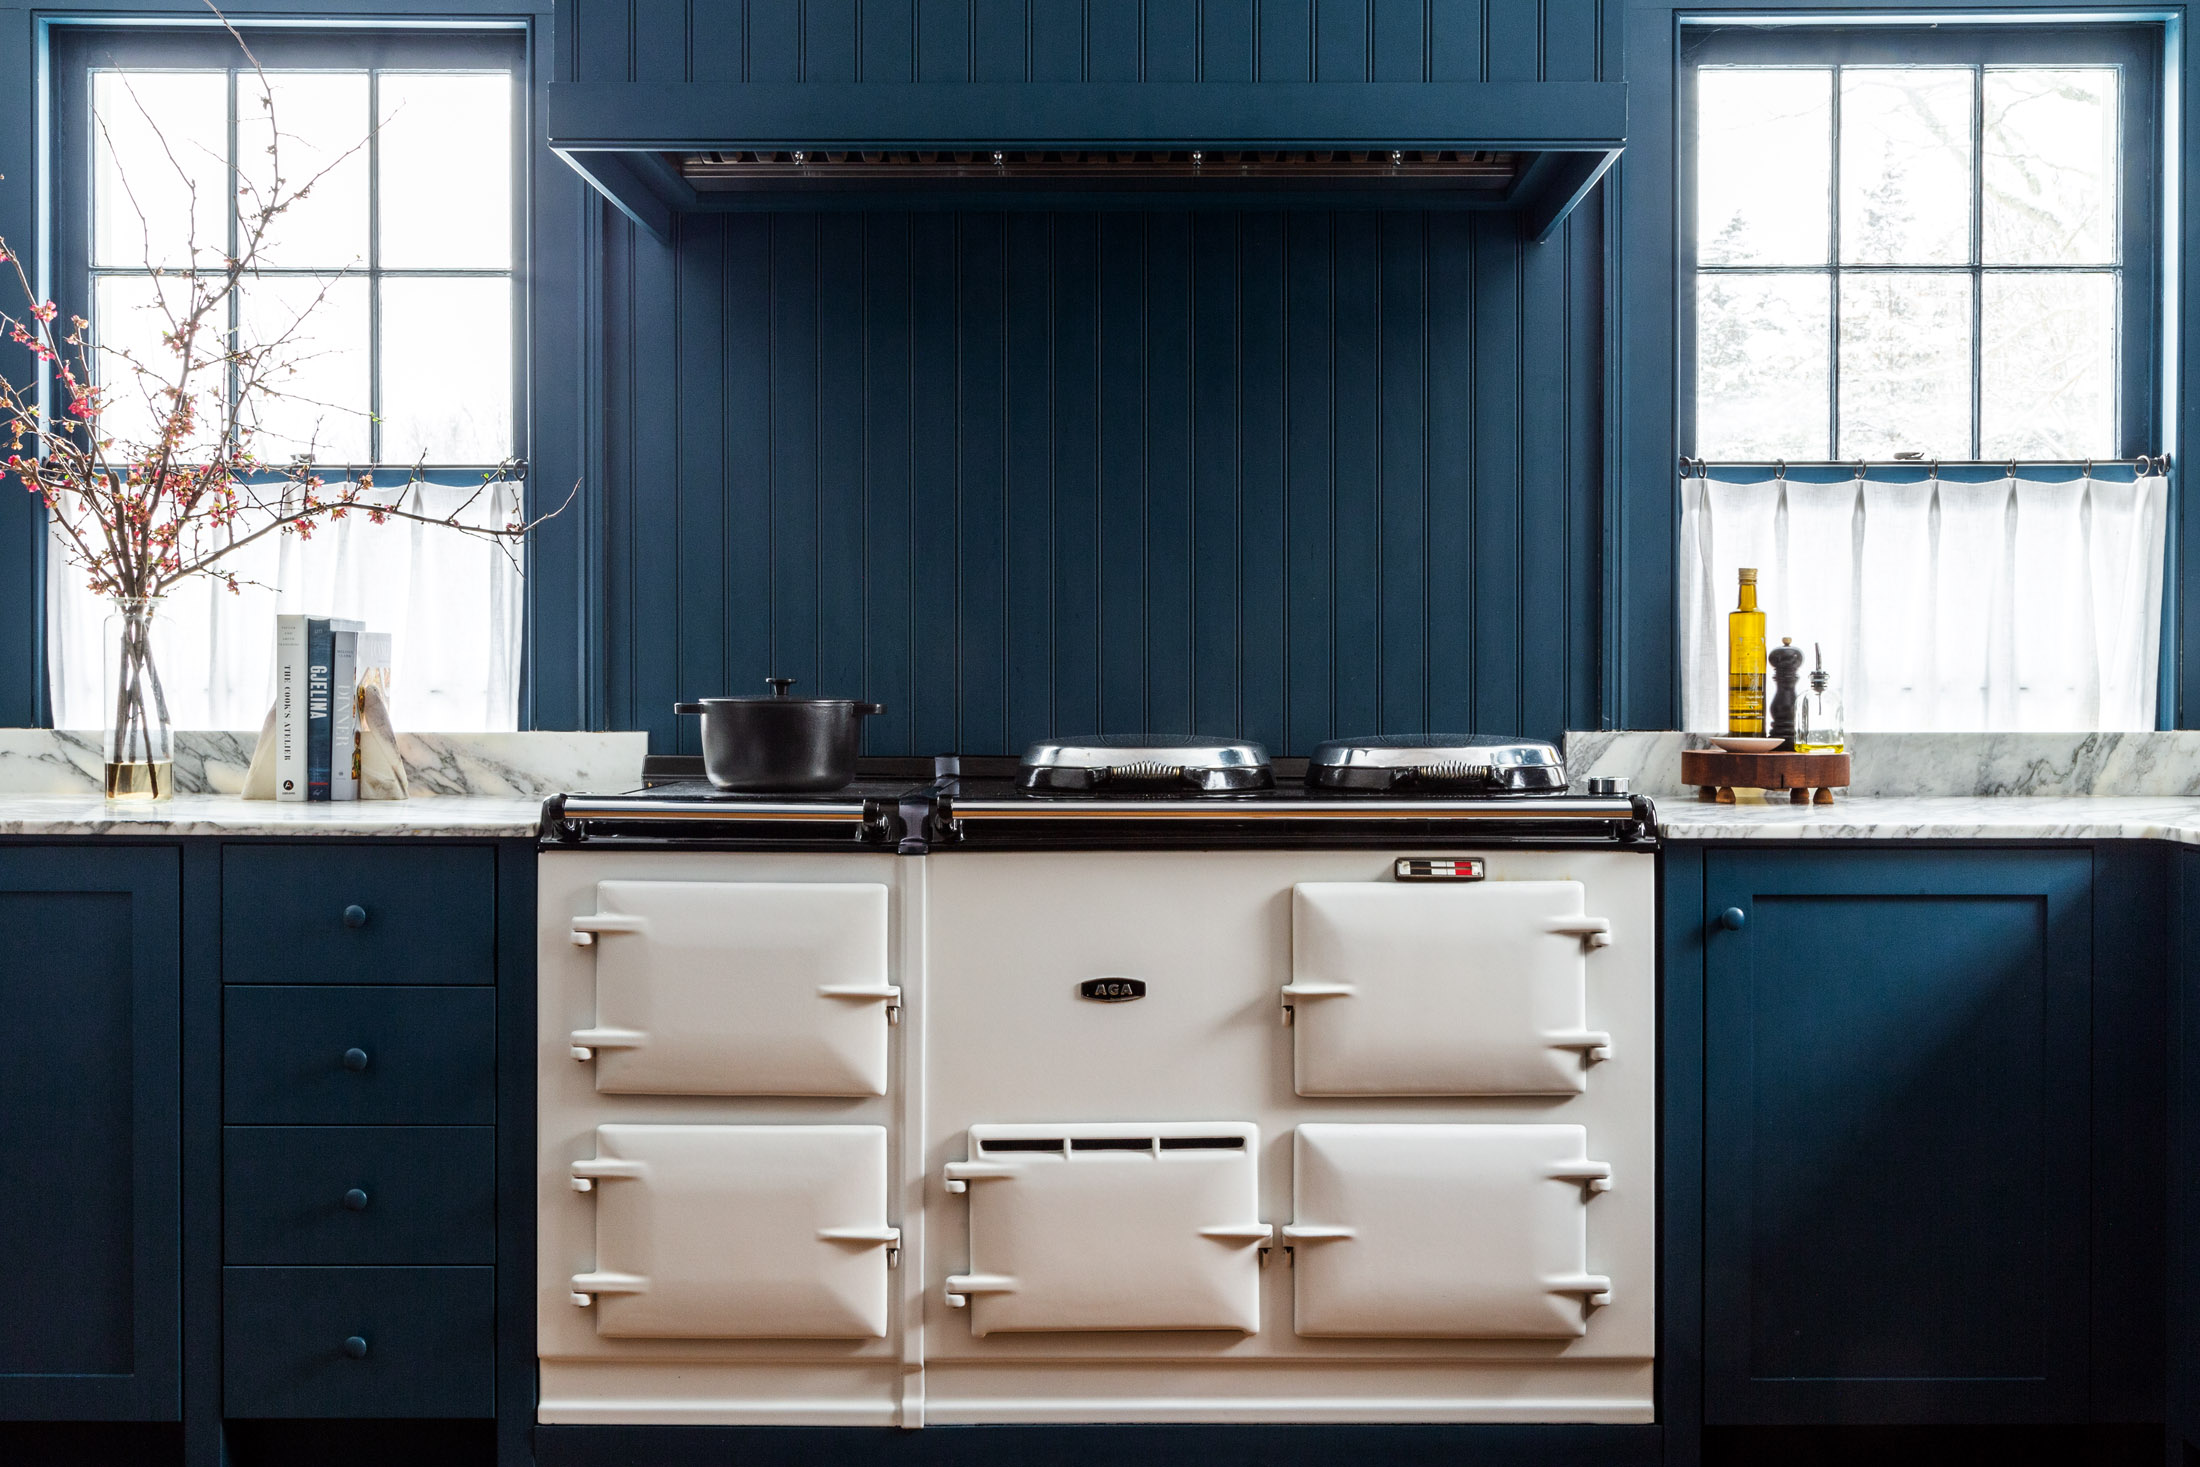 the white aga stove stands out against a sea of blue. photograph by thomas rich 10